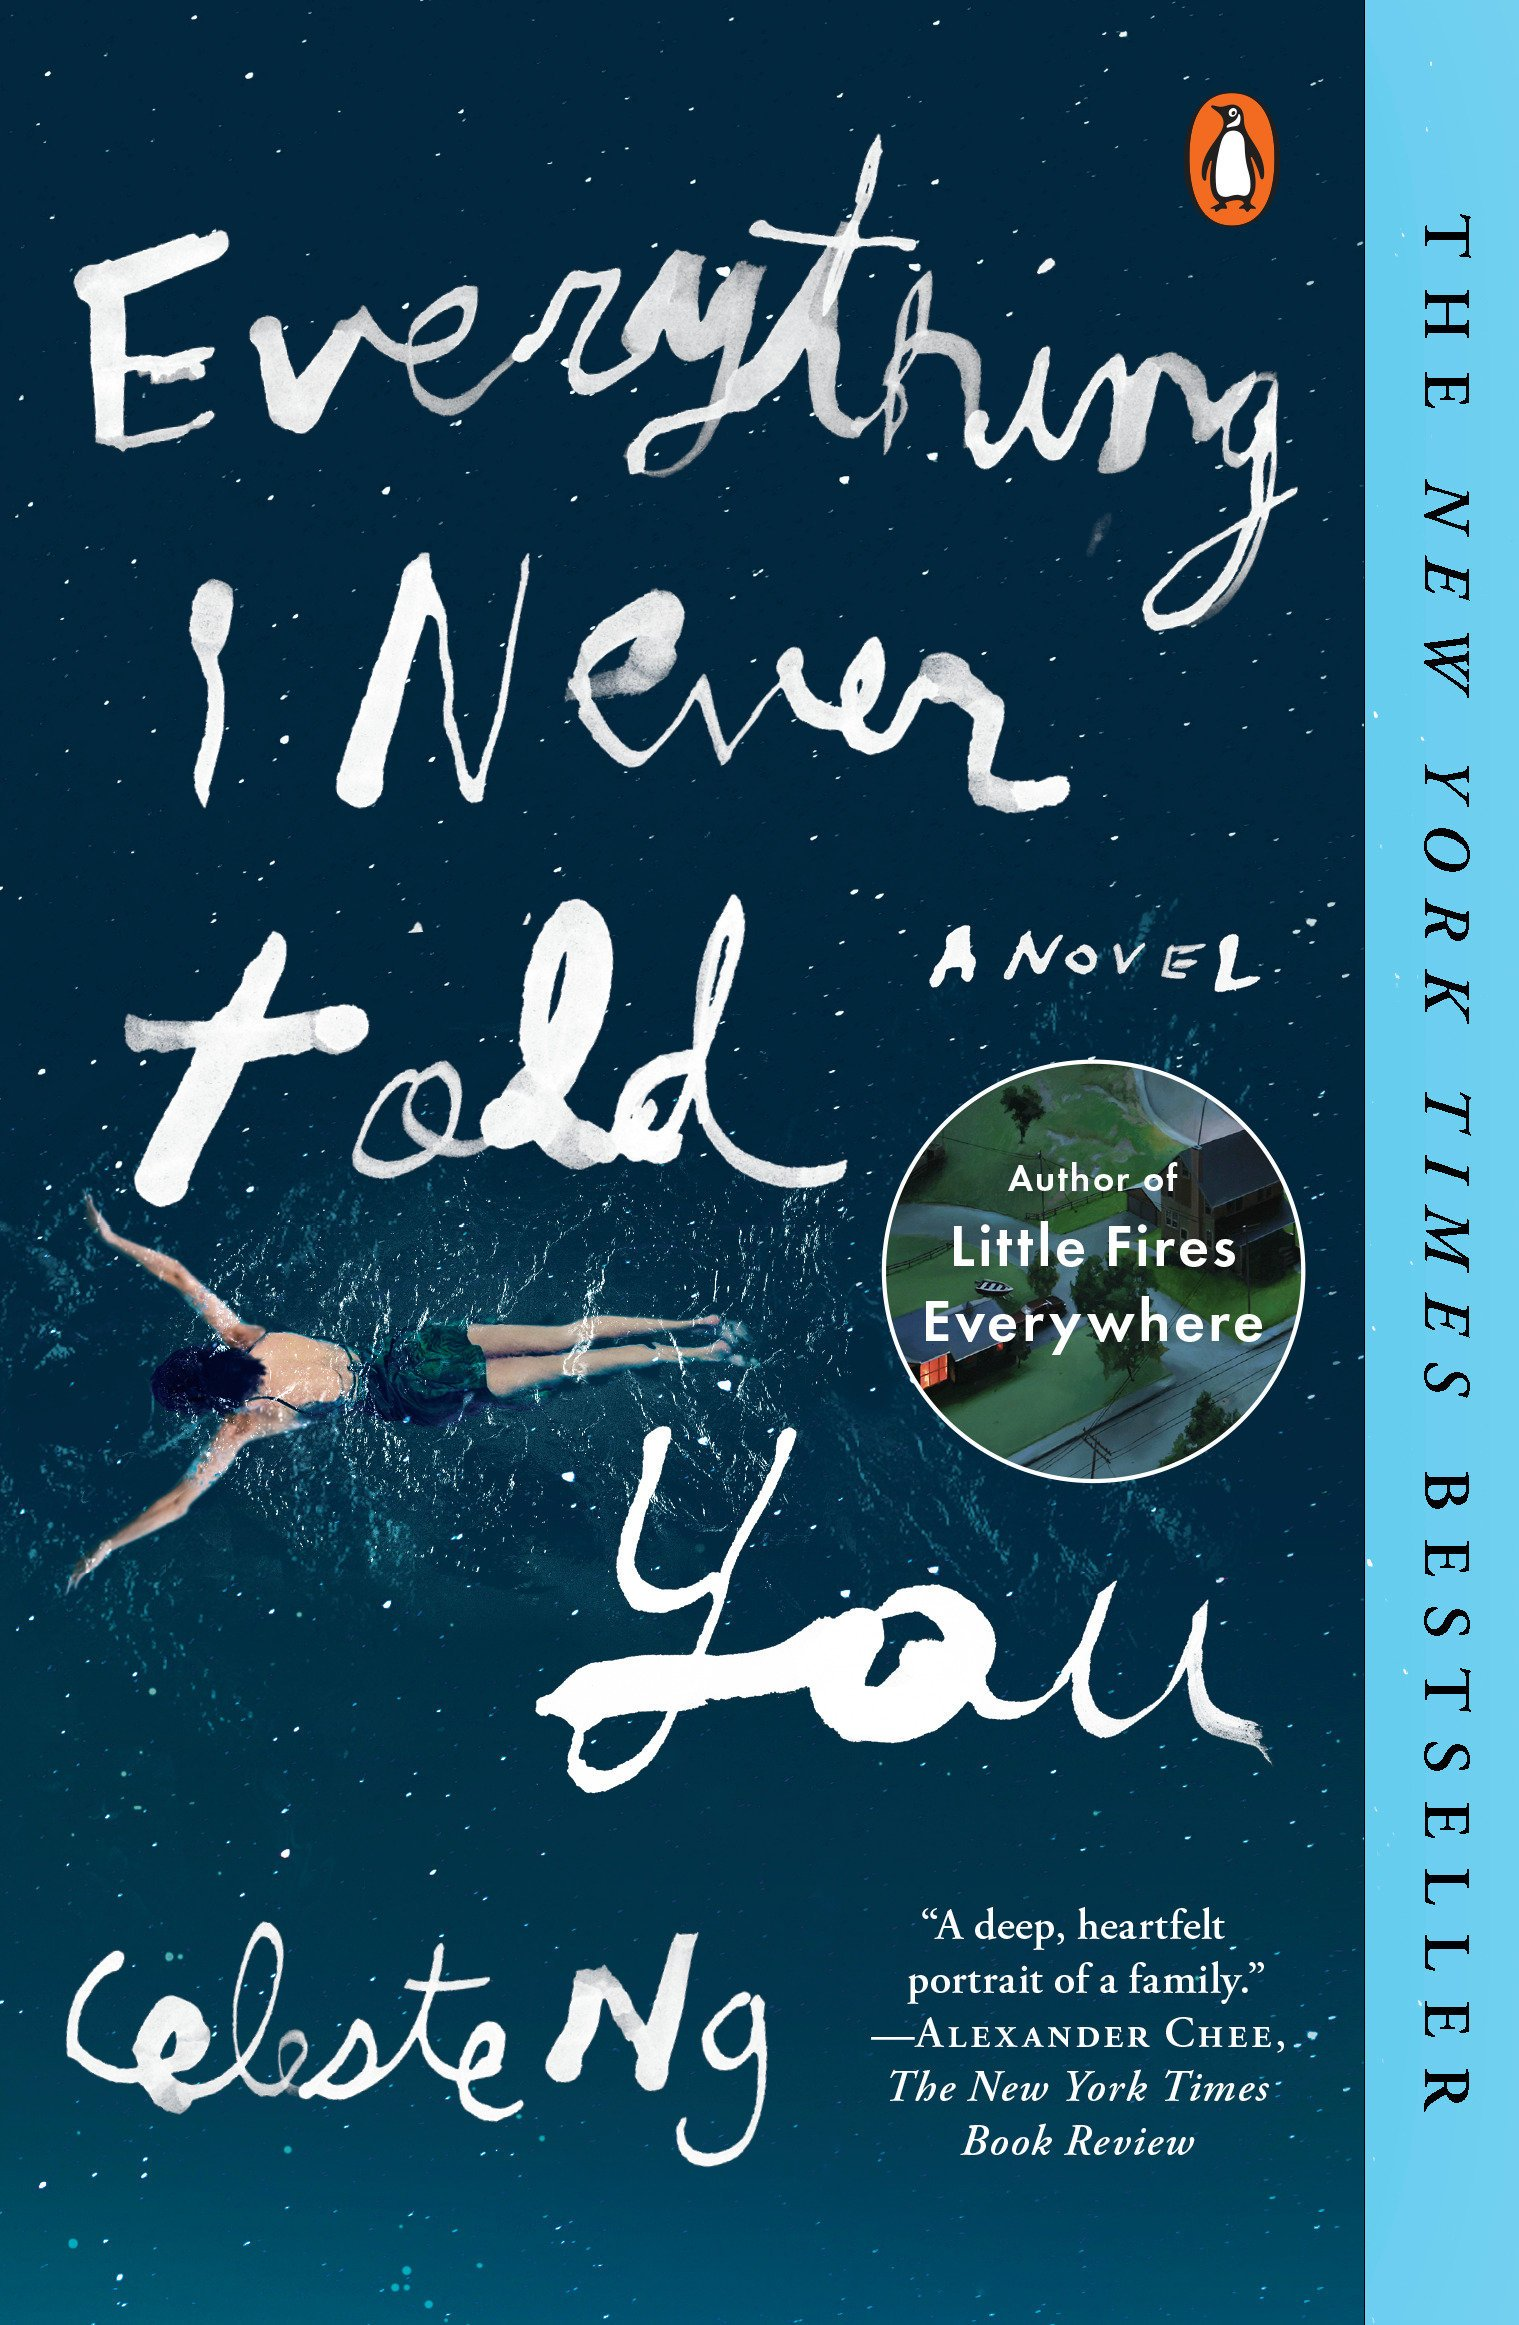 Book cover of Everything I Never Told You showing a bird's-eye view of a woman swimming in dark blue water.